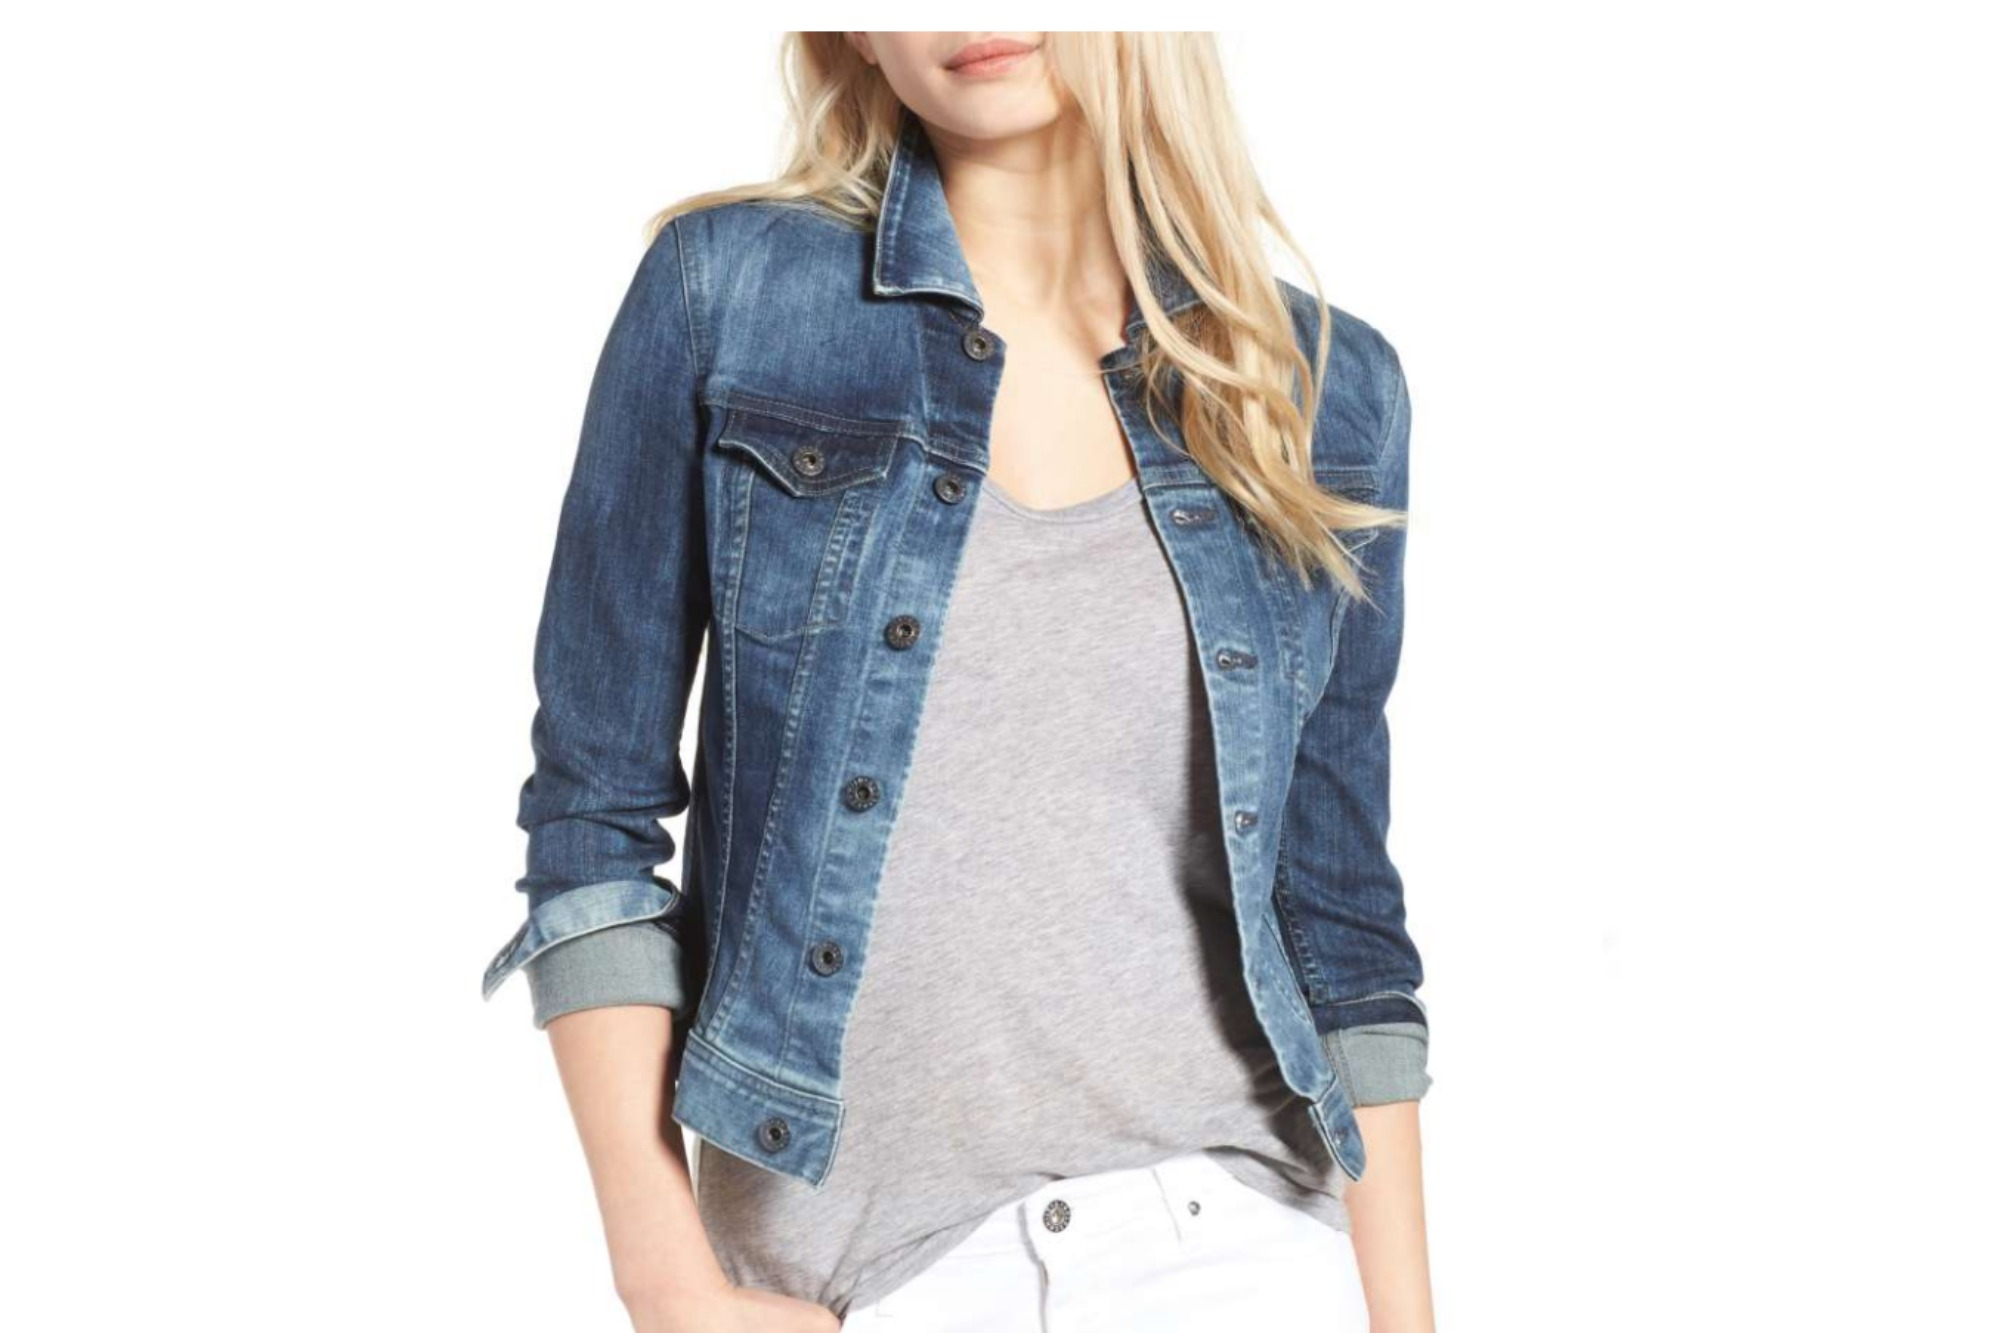 AN AG DENIM JACKET